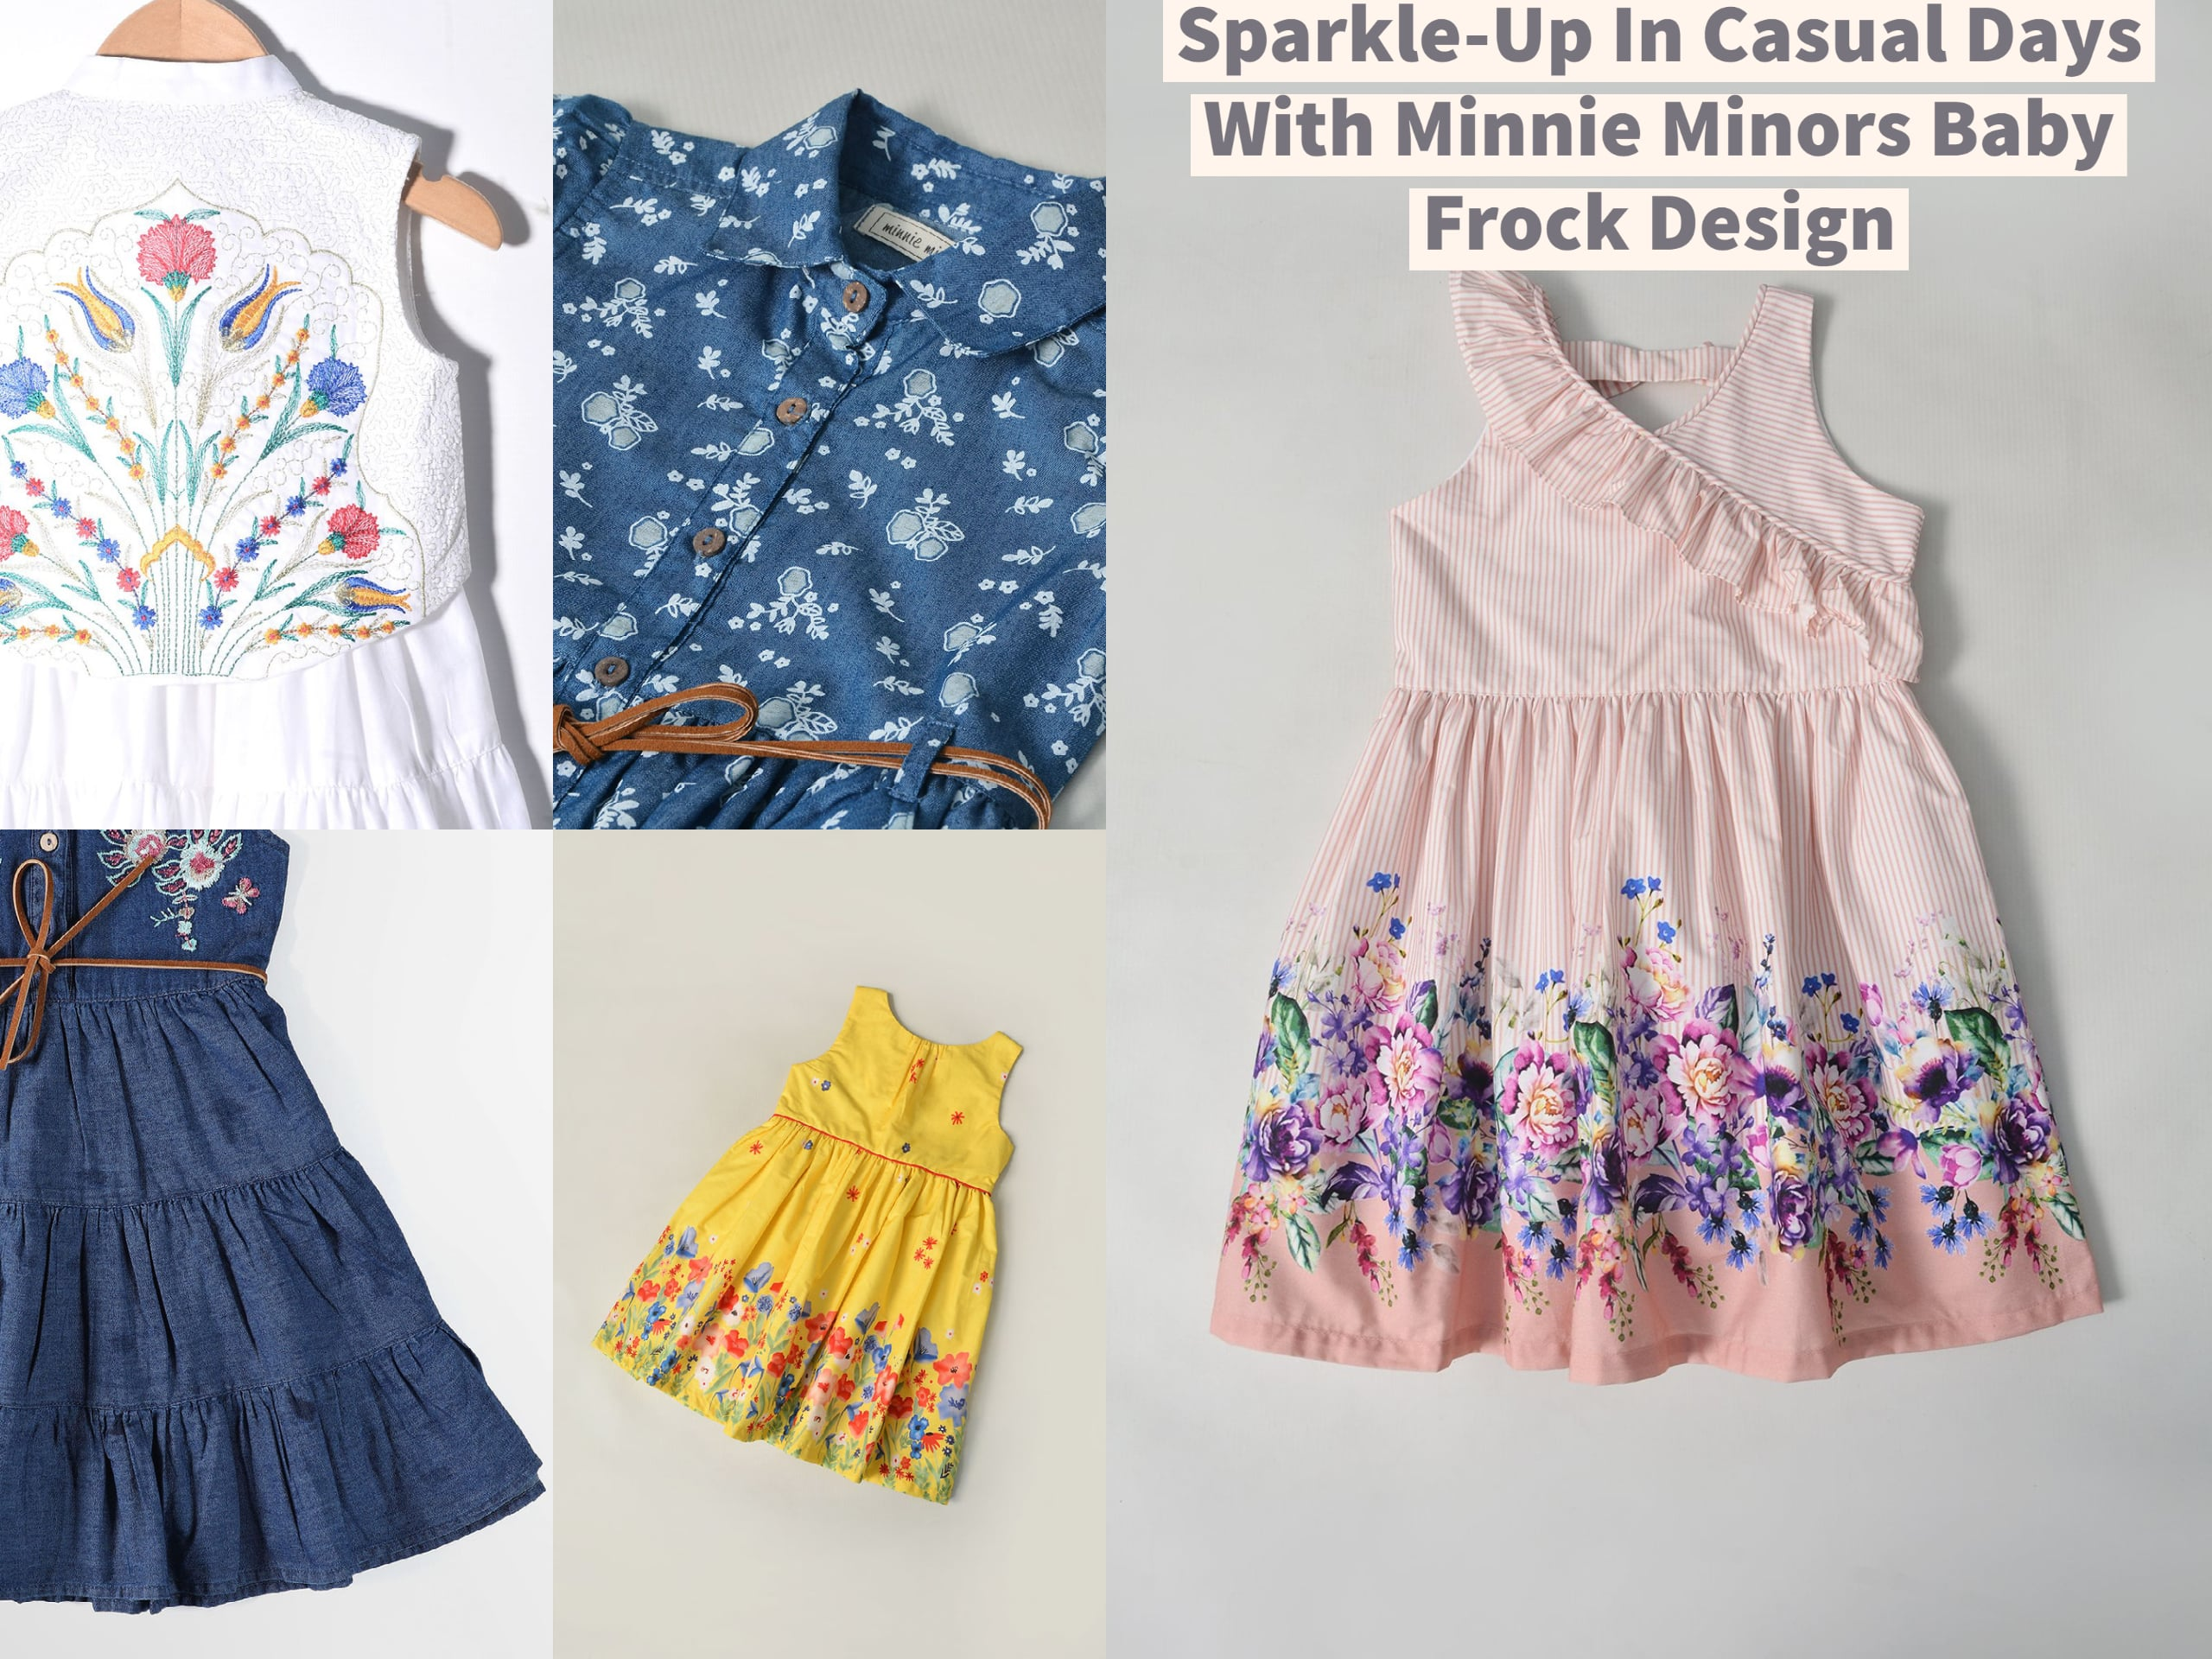 Sparkle-Up In Casual Days With Minnie Minors Baby Frock Design